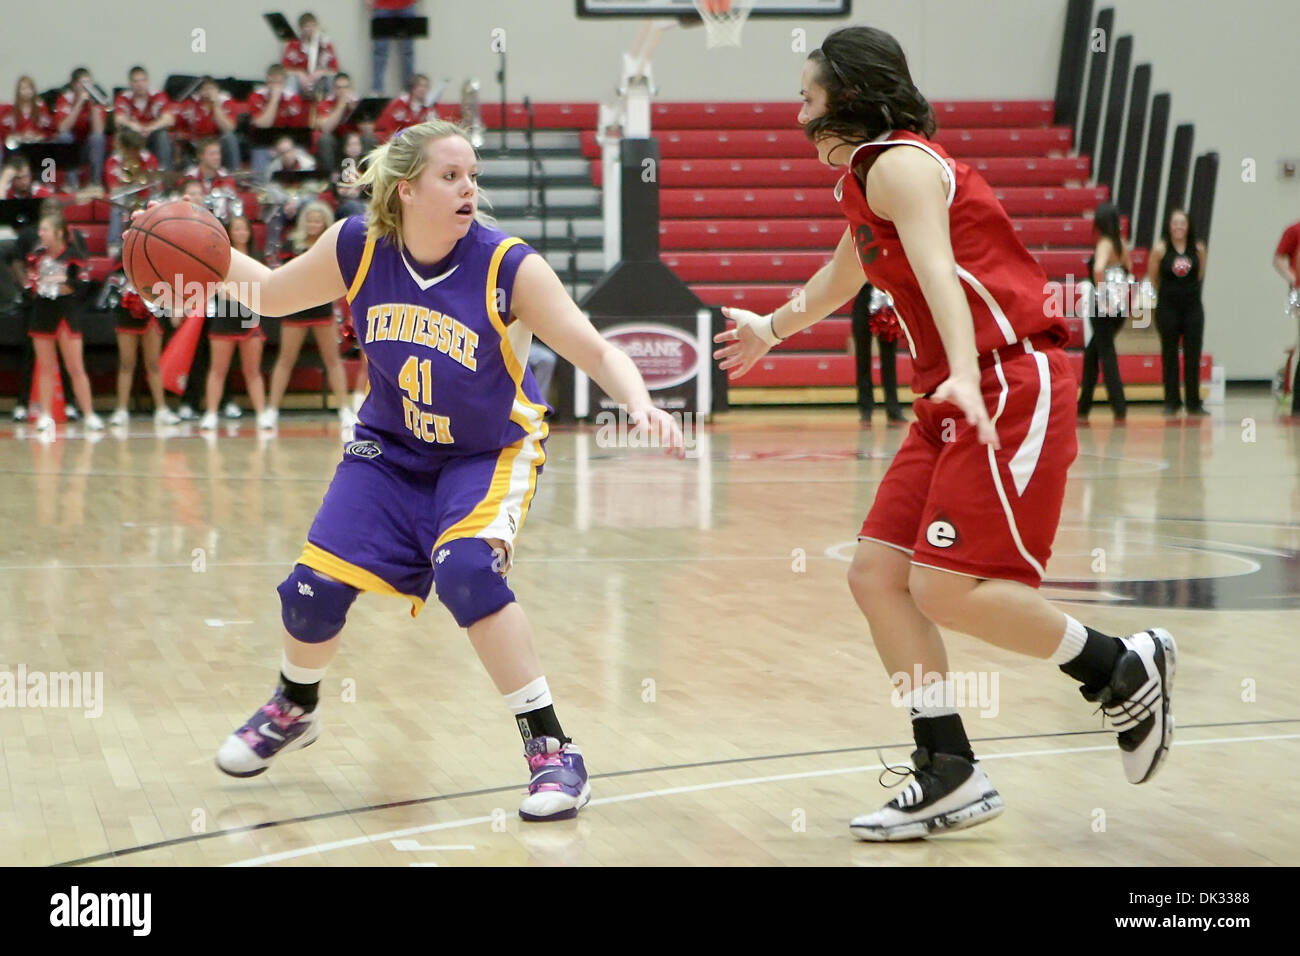 Feb. 22, 2011 - Edwardsville, Illinois, U.S - Tennessee Tech guard/forward Molly Heady (40) and SIUE guard Sydney Stahlberg (5) in action during a game between Southern Illinois University Edwardsville (SIUE) and Tennessee Tech  at the Sam M. Vadalabene Center in Edwardsville, Illinois. Tennessee Tech defeated SIUE 68-52. (Credit Image: © Scott Kane/Southcreek Global/ZUMAPRESS.com) - Stock Image